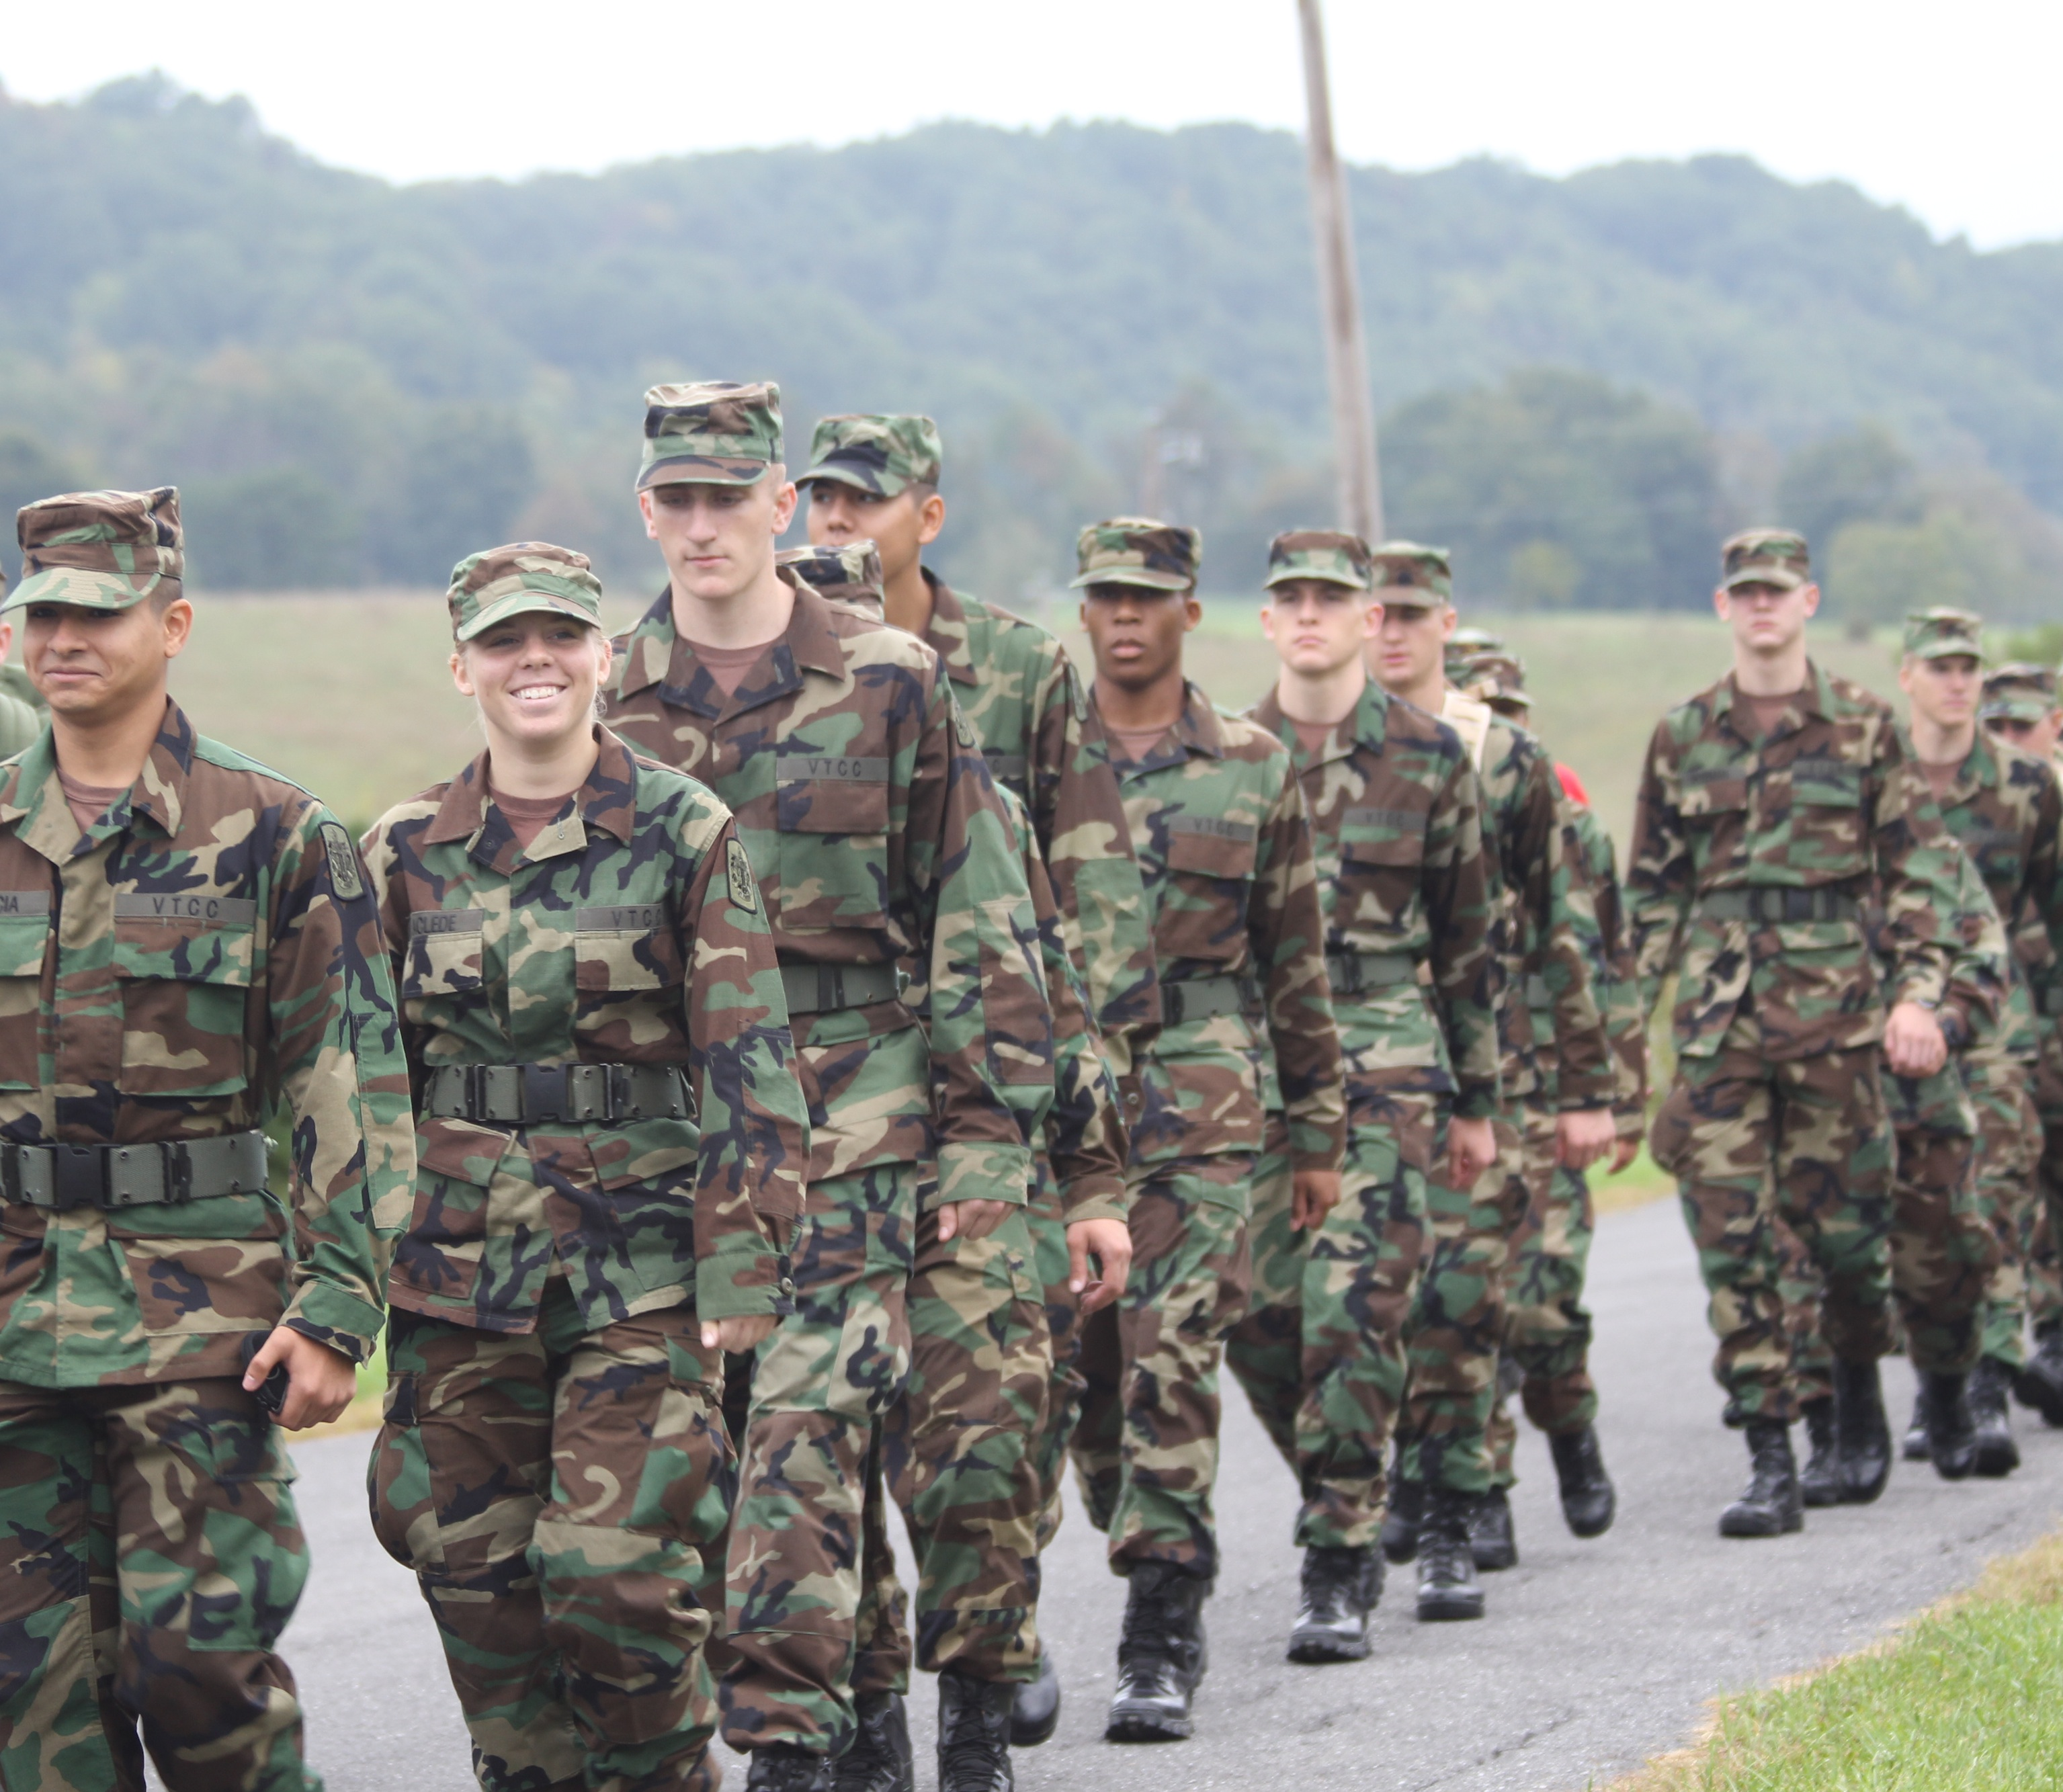 Members of the Virginia Tech Corps of Cadets Class of 2015 on the Fall 2011 Caldwell March in Craig County, Va.